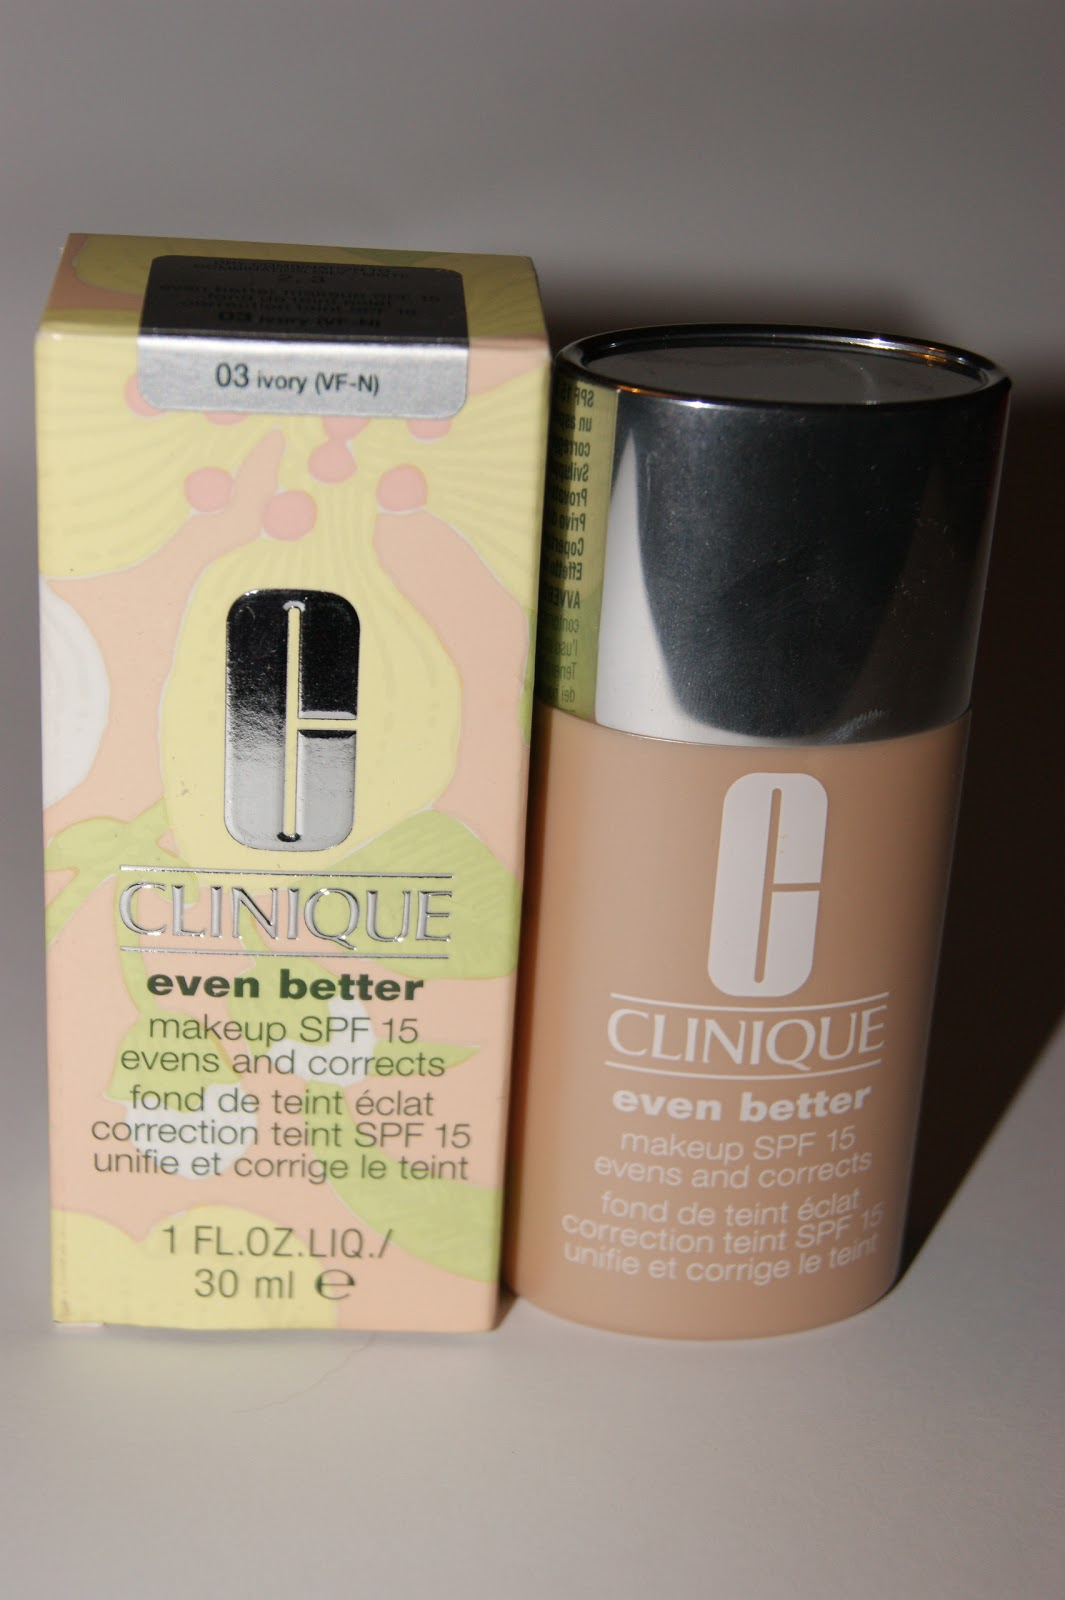 Clinique even better makeup foundation review swatches before - Clinique Even Better Foundation Review Saturday March 03 2012